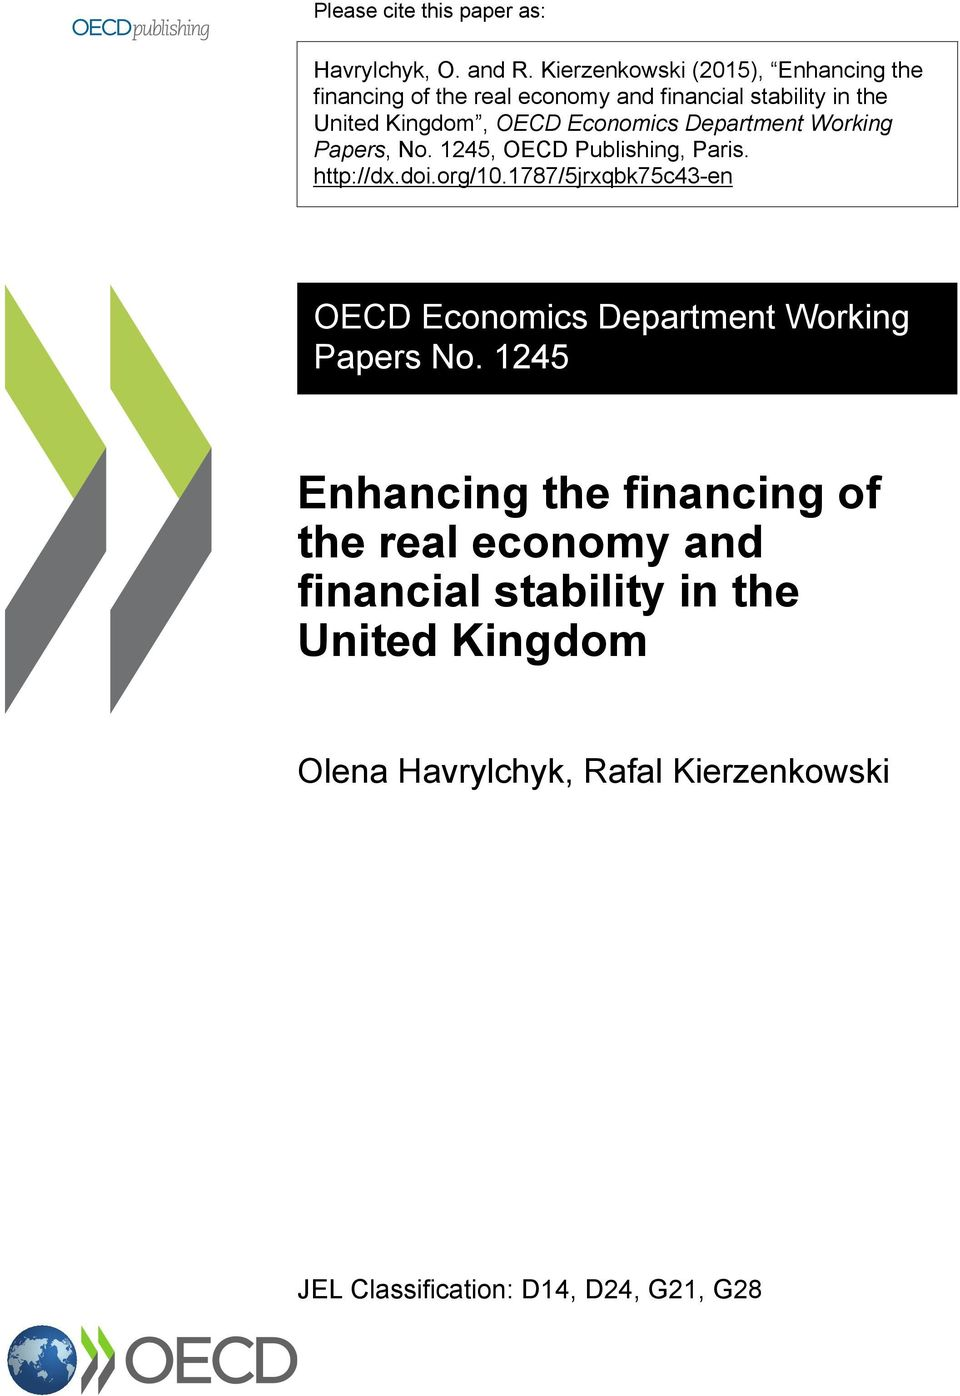 Economics Department Working Papers, No. 1245, OECD Publishing, Paris. http://dx.doi.org/1.